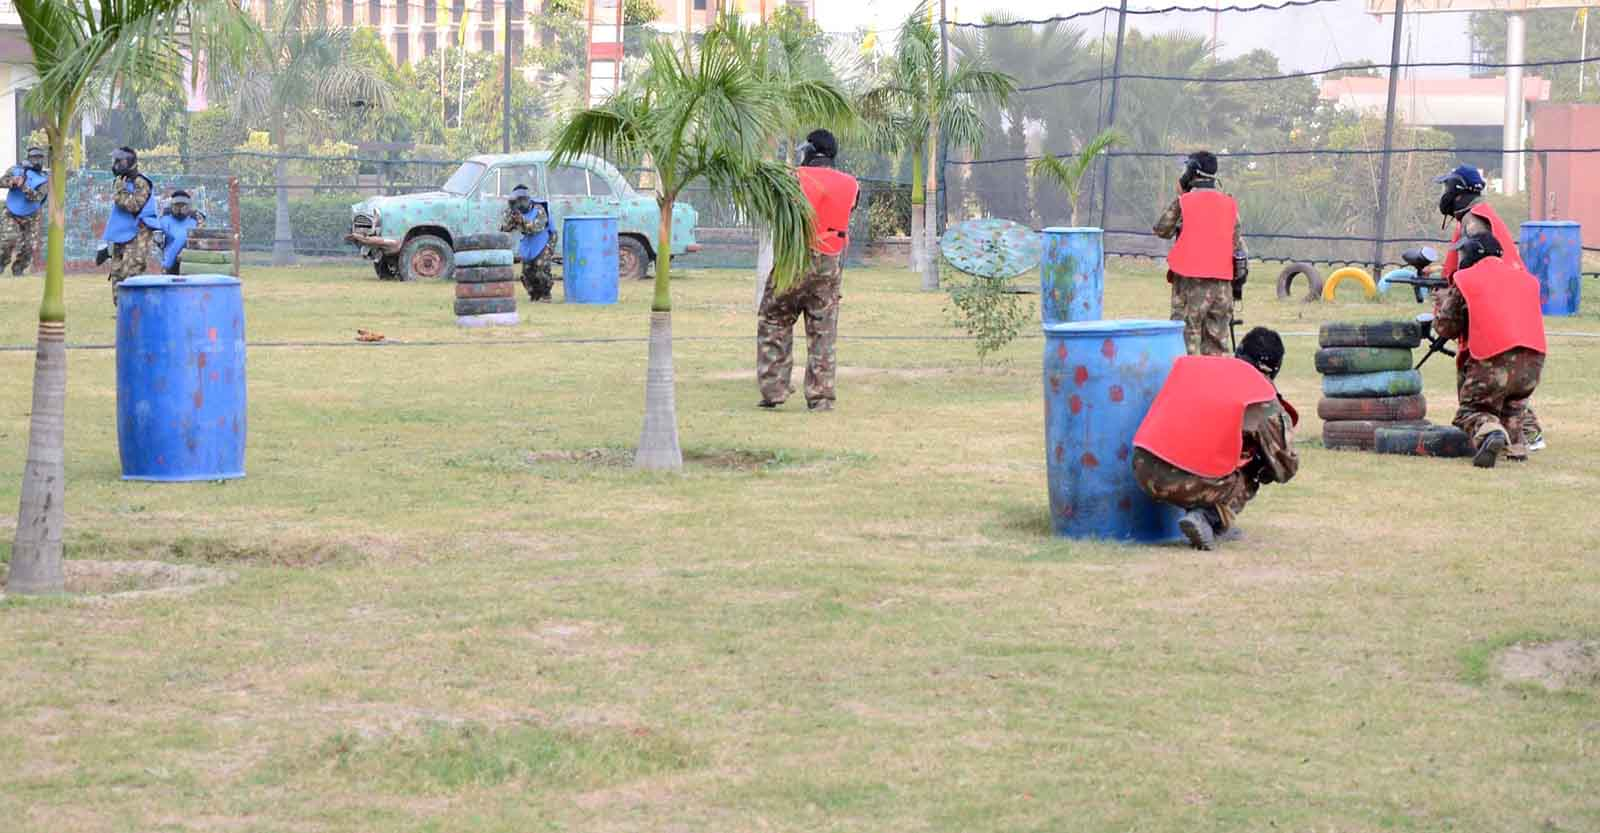 2. Play Paintball in Jaipur